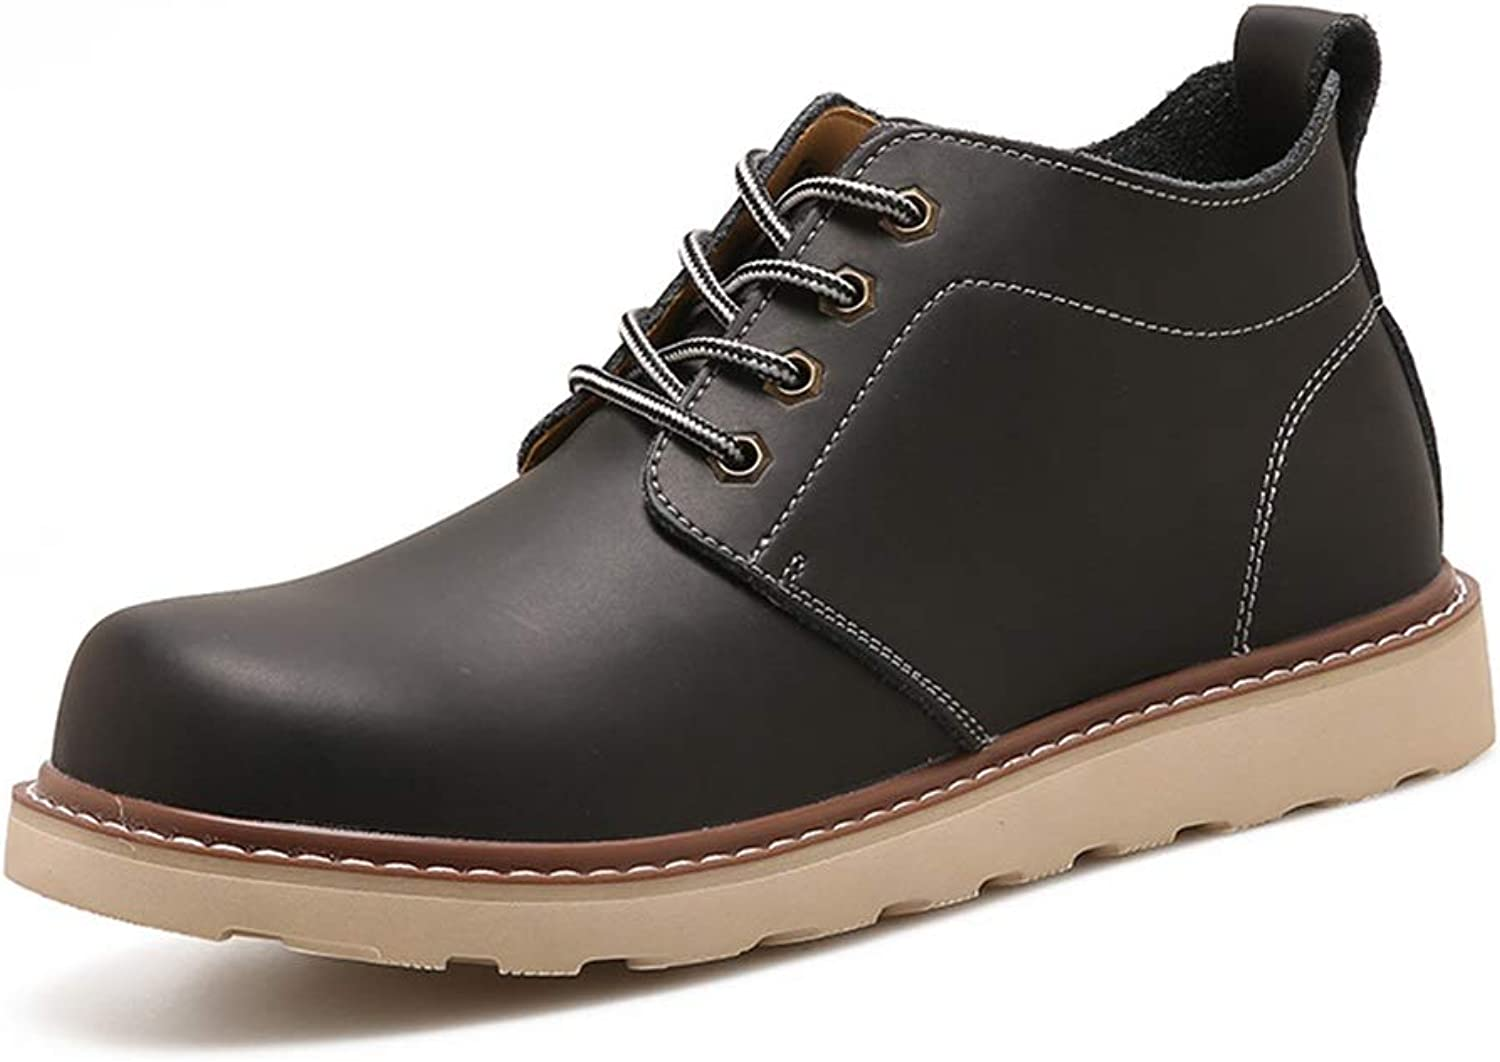 ZHRUI Mens Classic Ankle Boots Soft Sole Non Slip Waterproof Comfort Chukka Boots (color   Black, Size   UK 7.5)